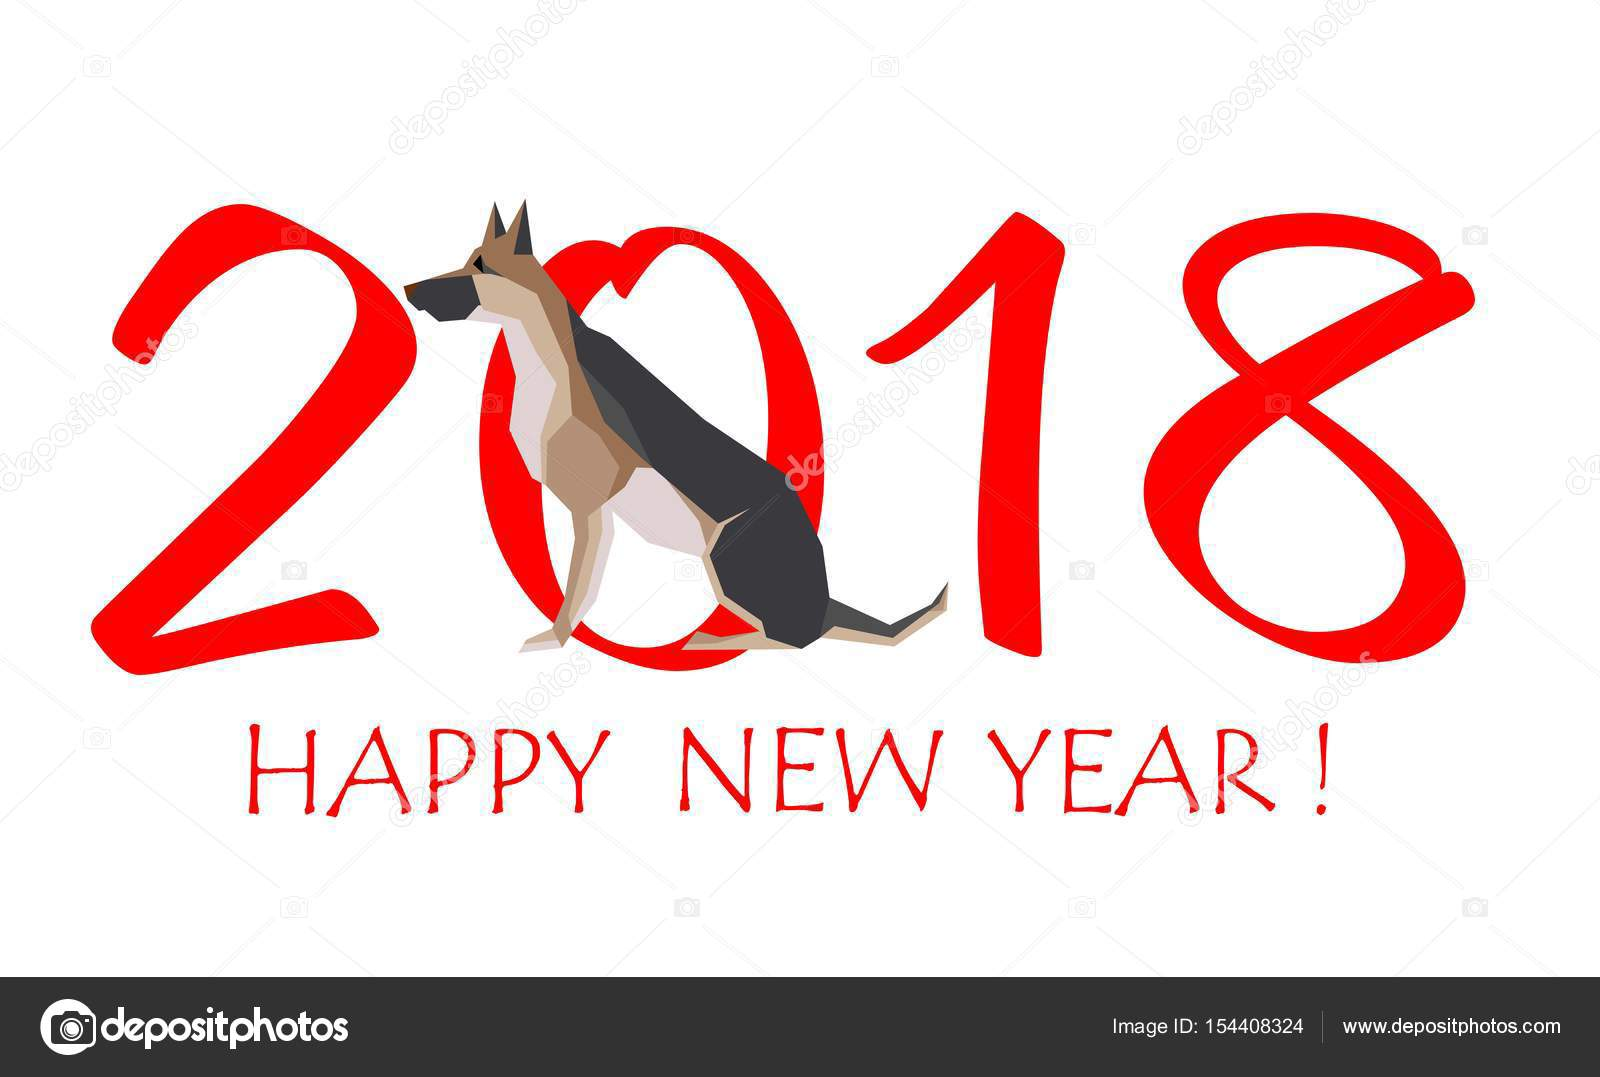 Greeting card for new year 2018 with sitting dog german shepherd greeting card for new year 2018 with sitting dog german shepherd stock vector m4hsunfo